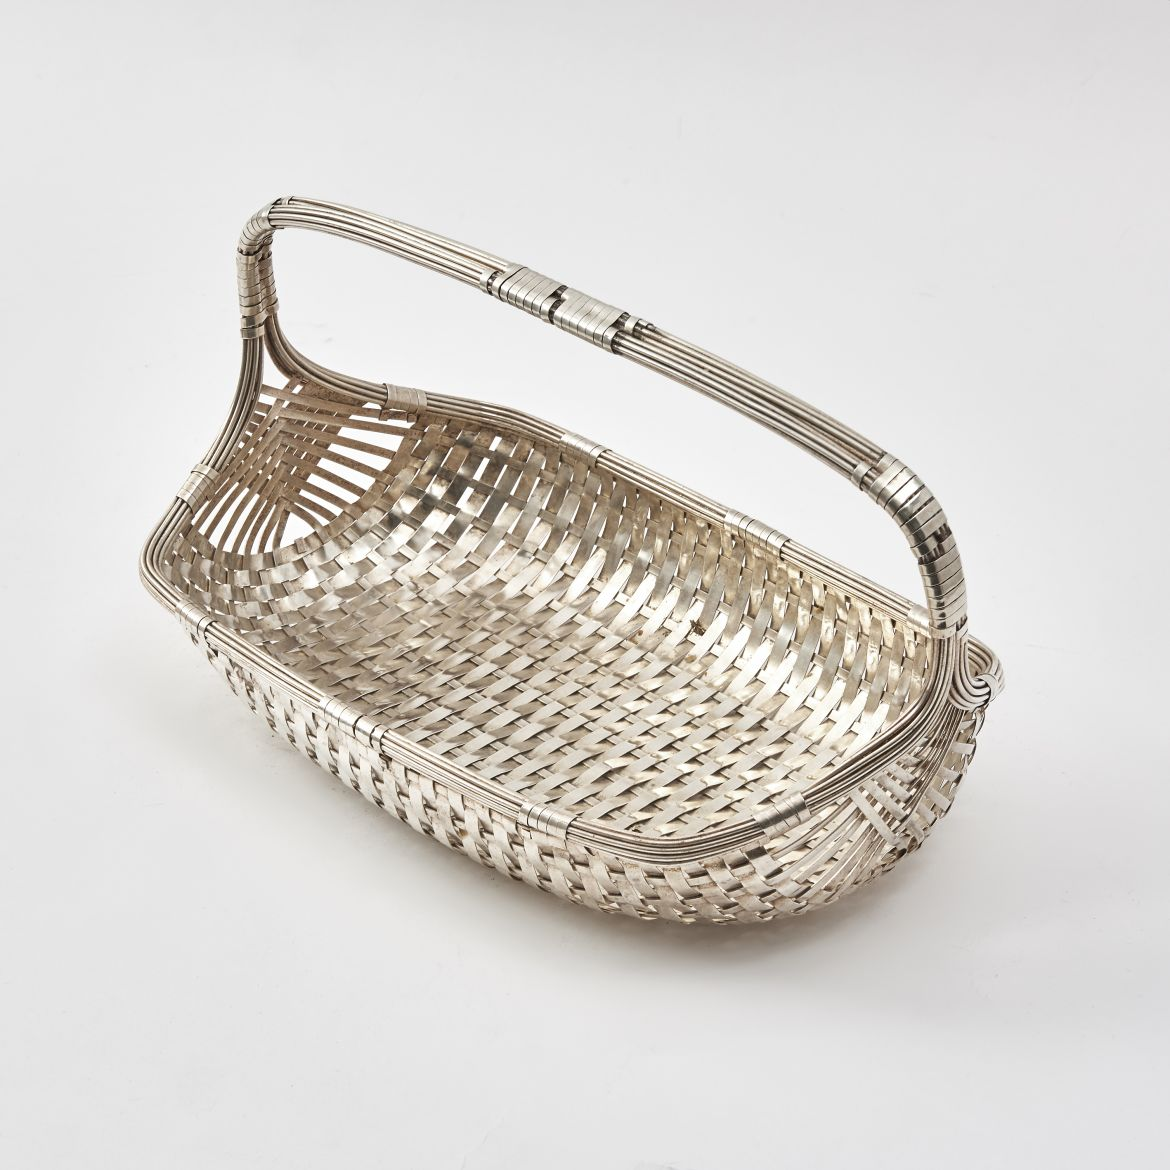 French Silver Plate Woven Bread Basket